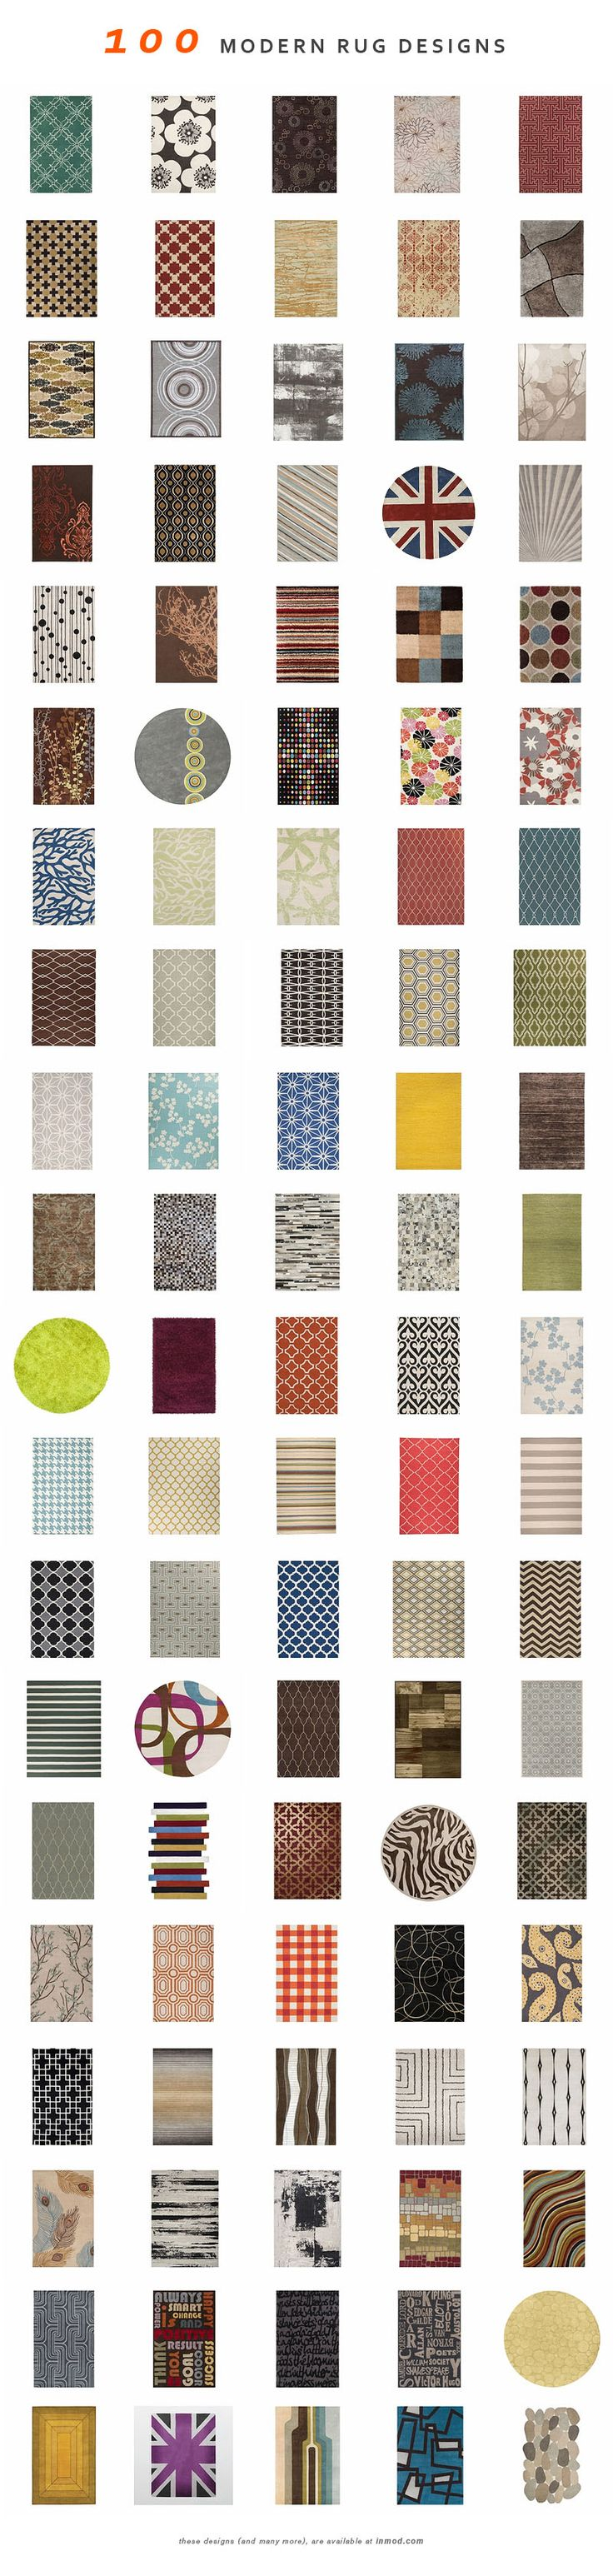 100 Modern rugs (and hundreds more) at Inmod